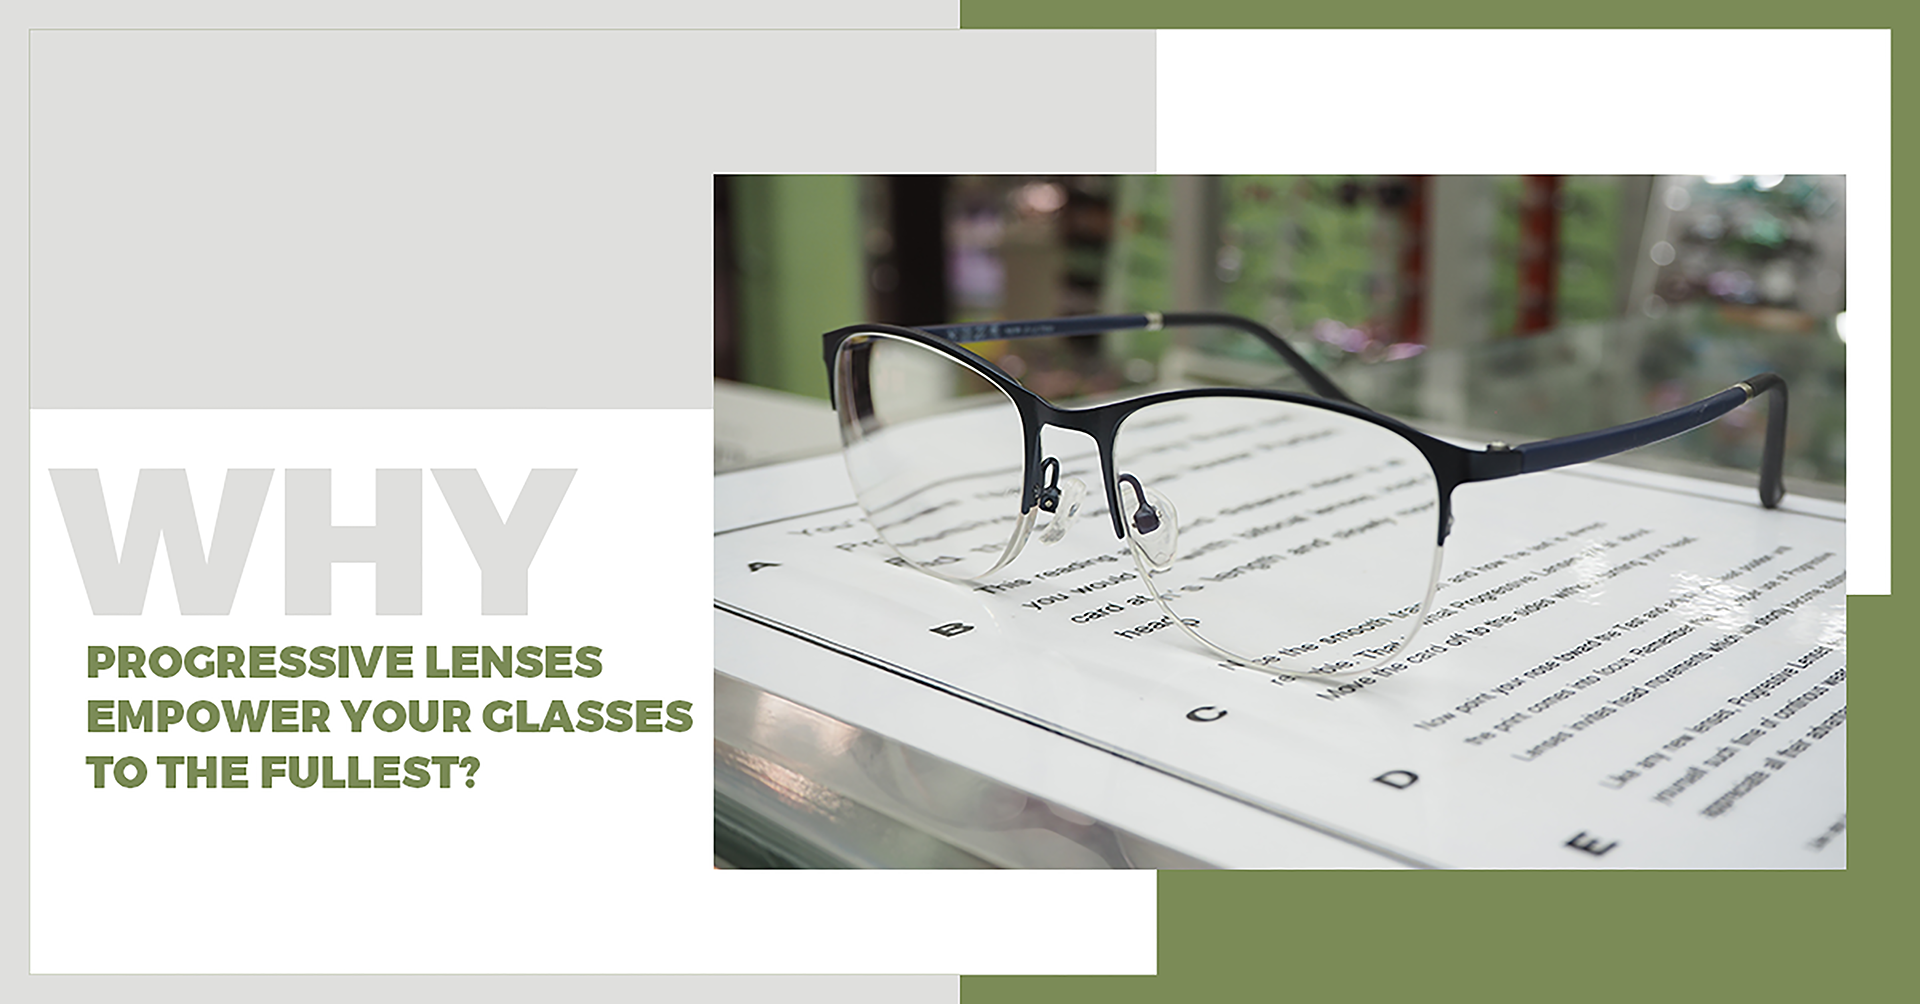 10) WHY PROGRESSIVE LENSES EMPOWER YOUR GLASSES TO THE FULLEST?